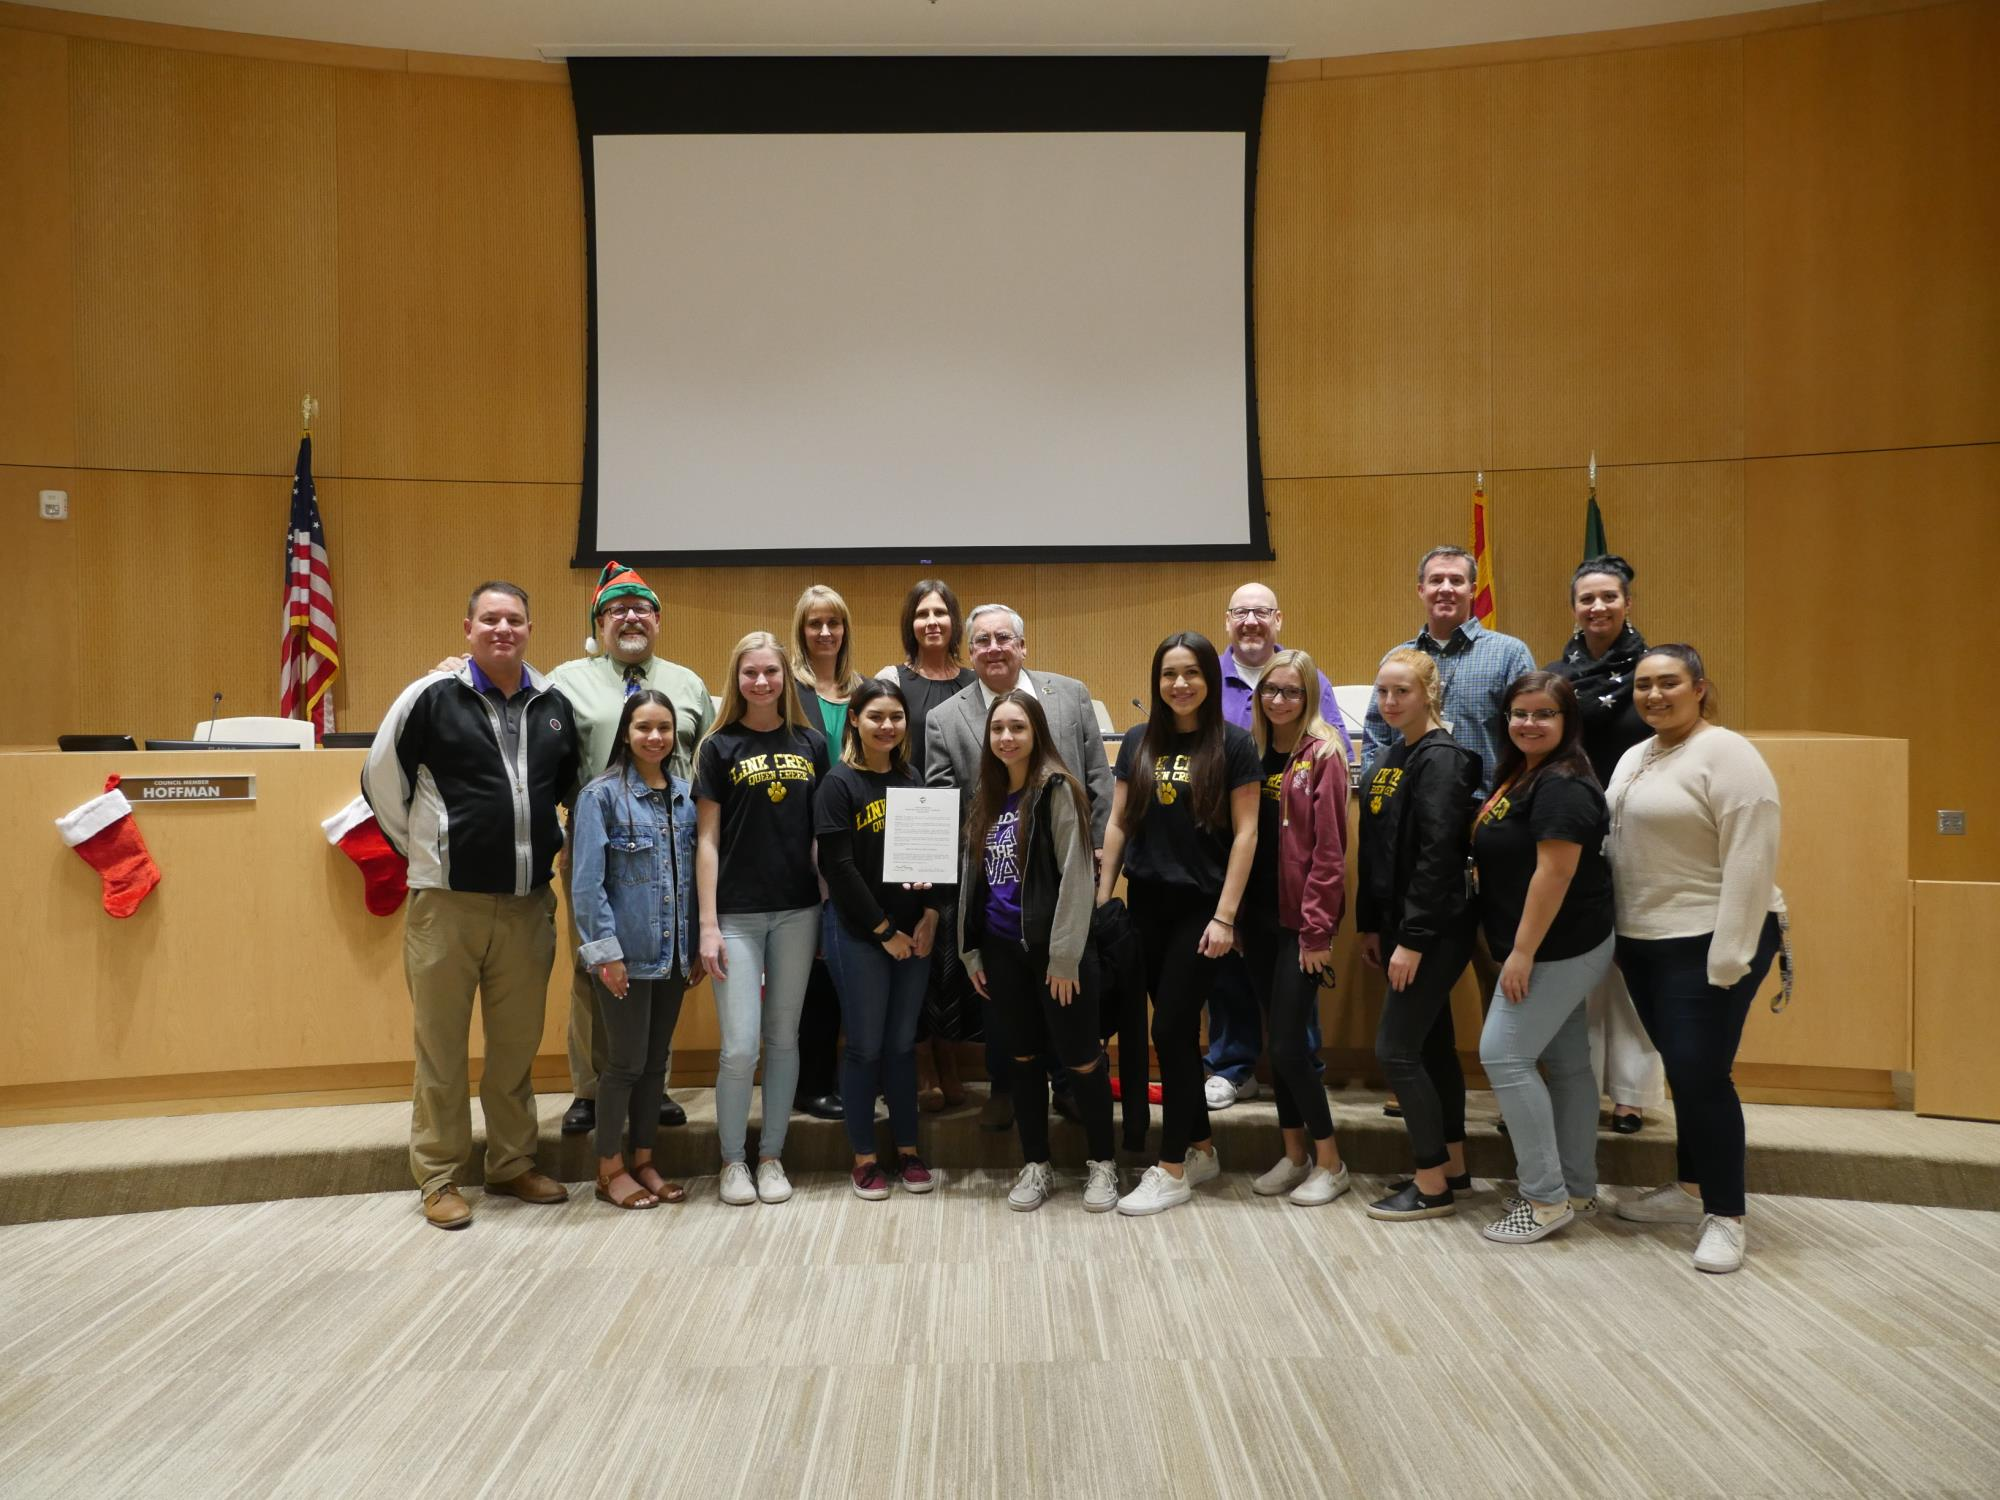 Mayor Barney and the Town Council with QCHS Teen Link Crew